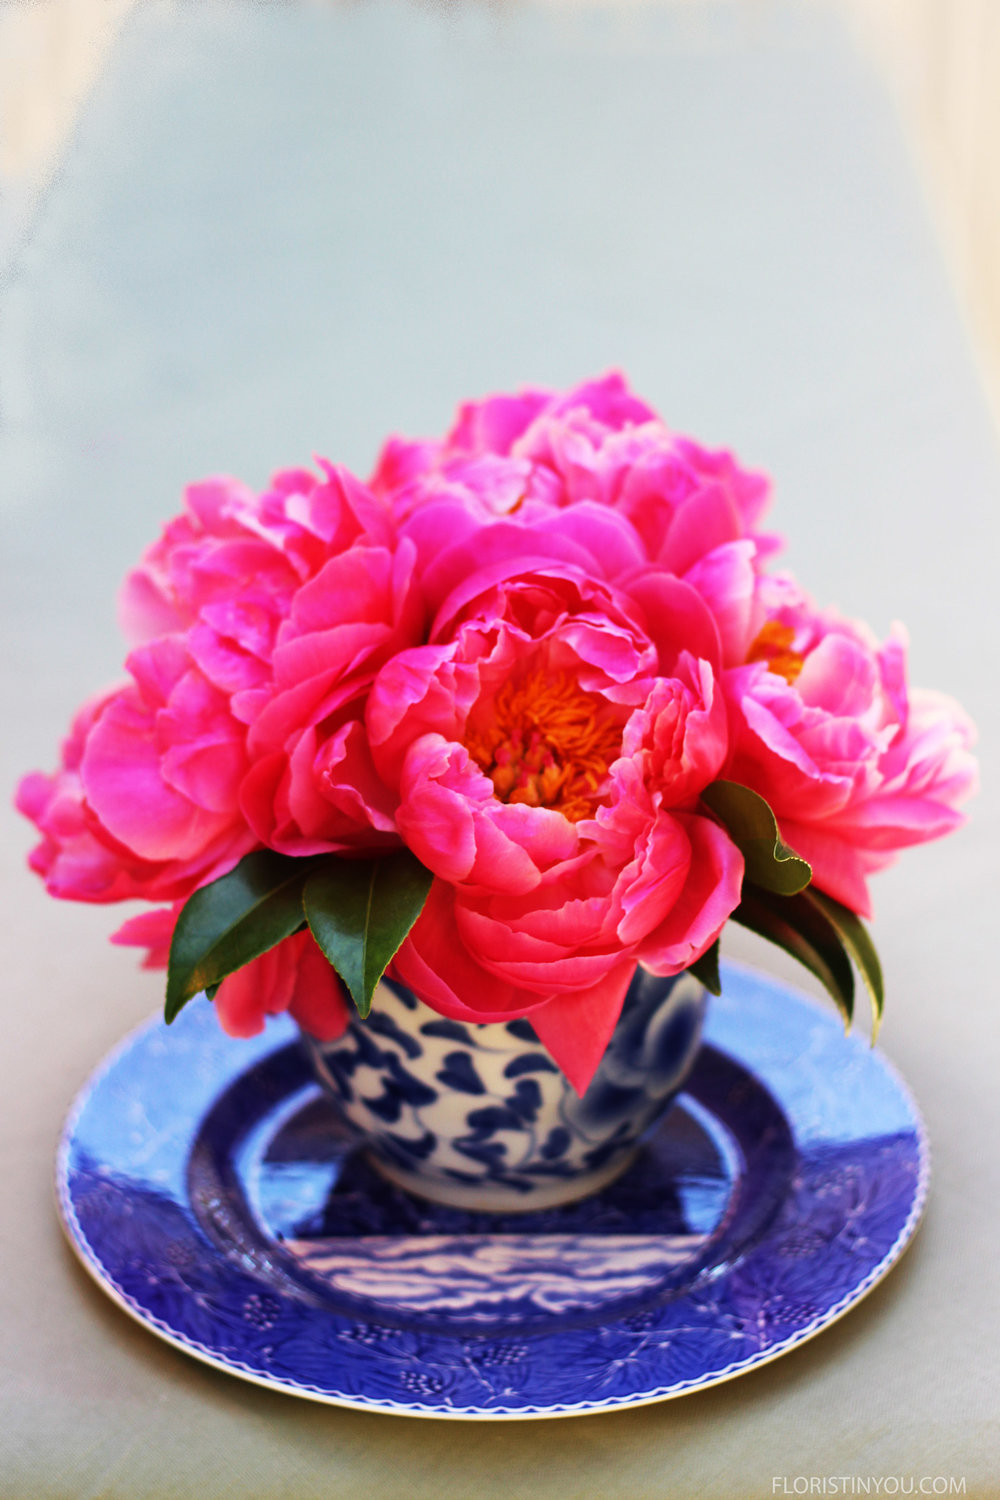 Enjoy these luscious peonies!